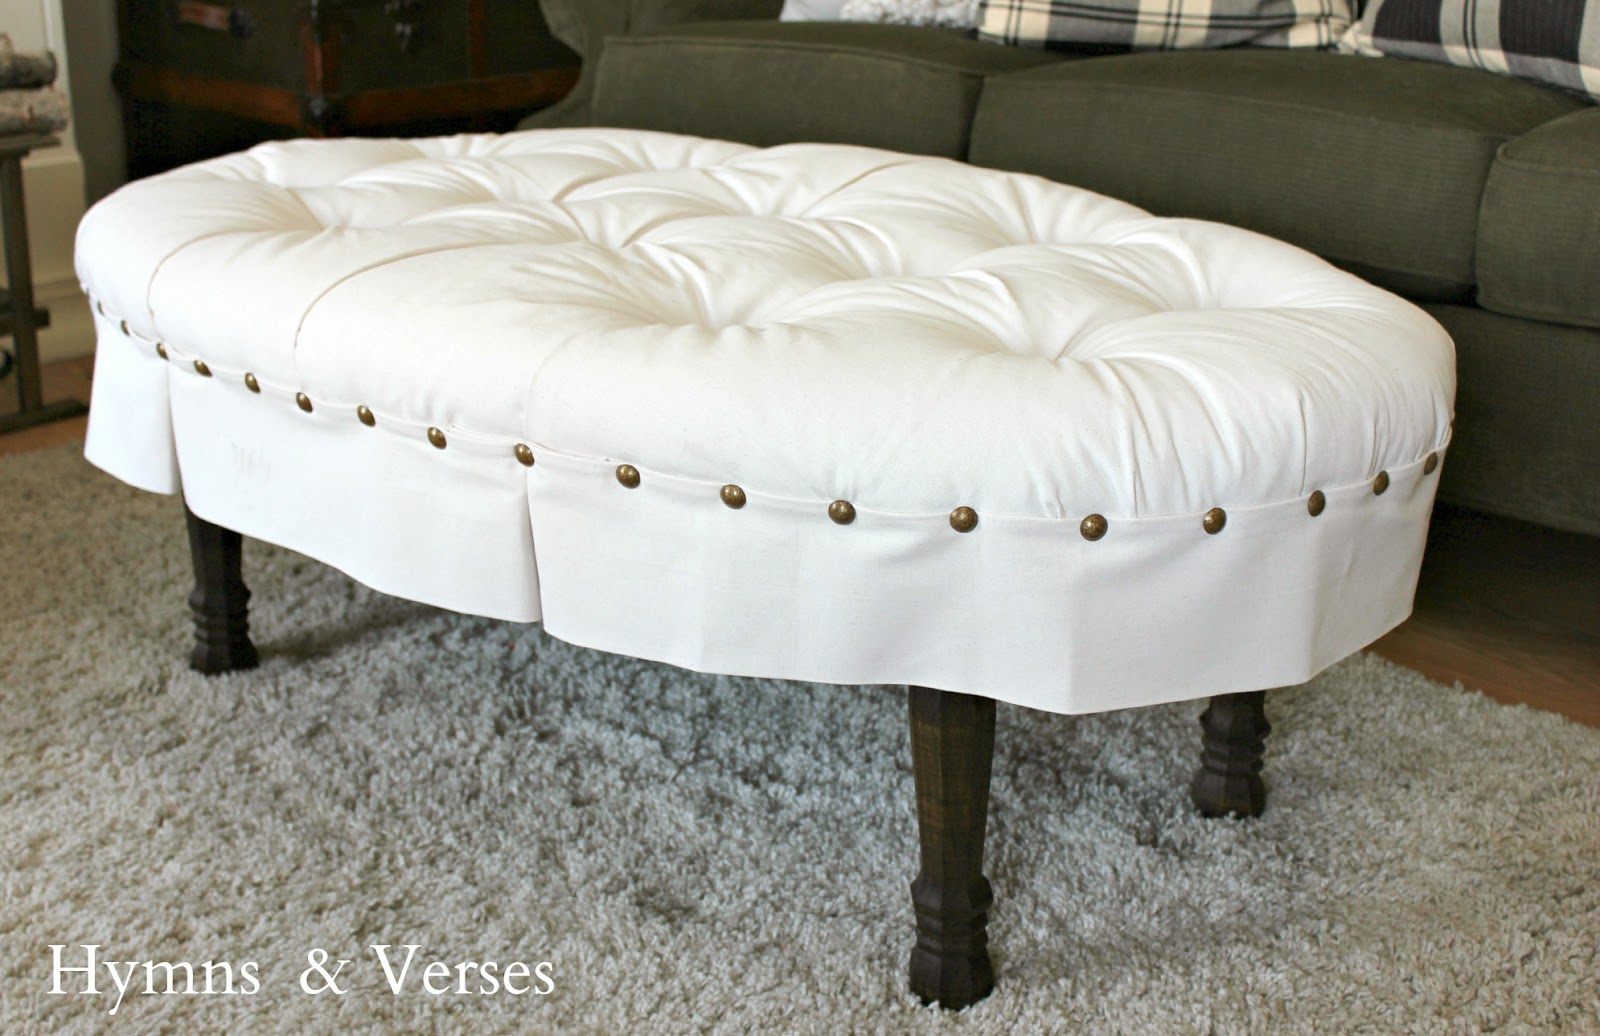 Hymns and Verses: DIY Oval Button Tufted Ottoman